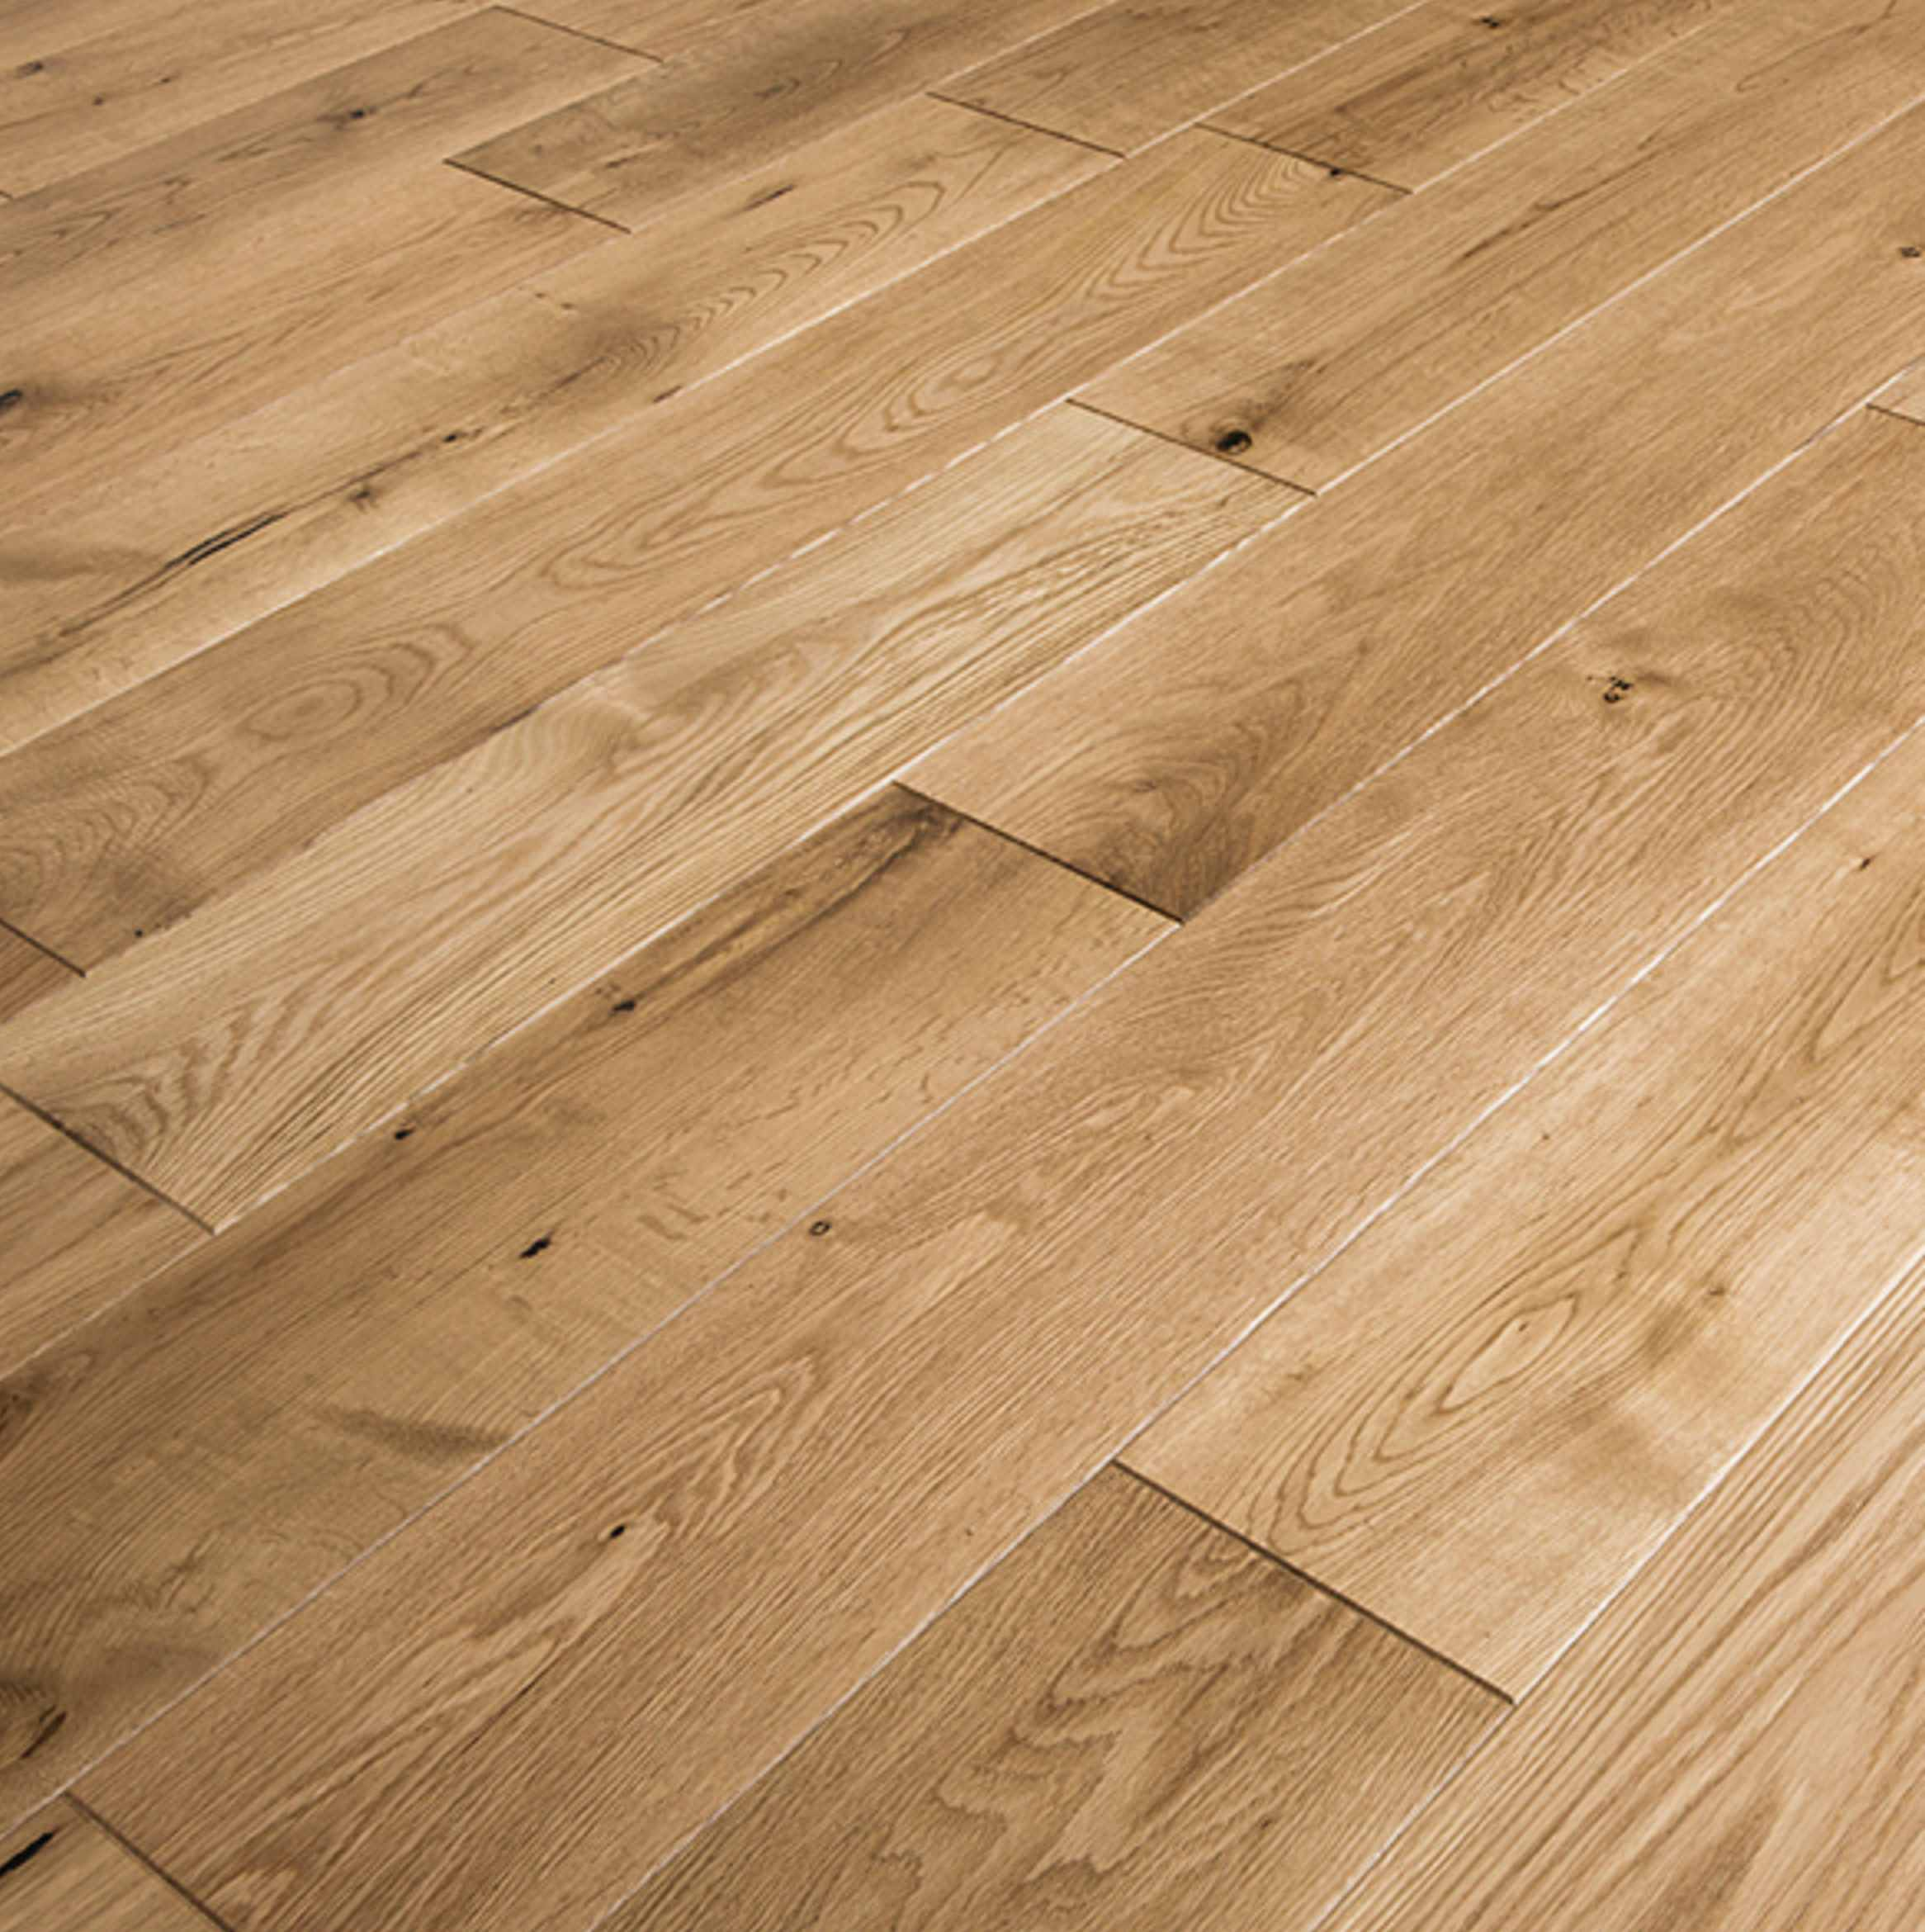 Low End - Trade Choice Solid Oak  (Image: poshflooring.co.uk)